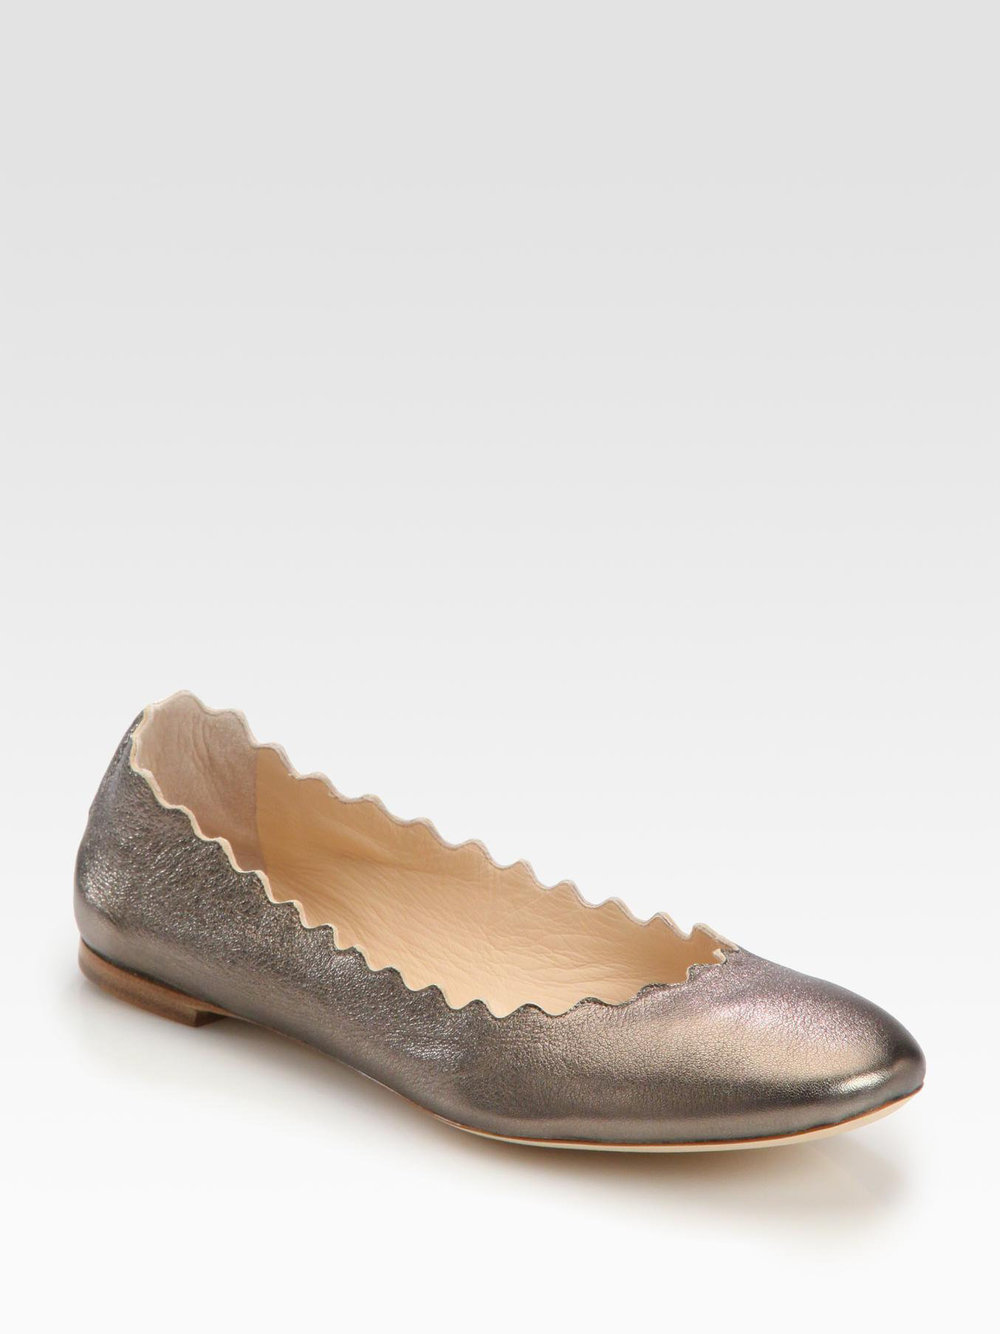 chloe-silver-scalloped-leather-ballet-flats-product-1-14884203-232138778.jpeg